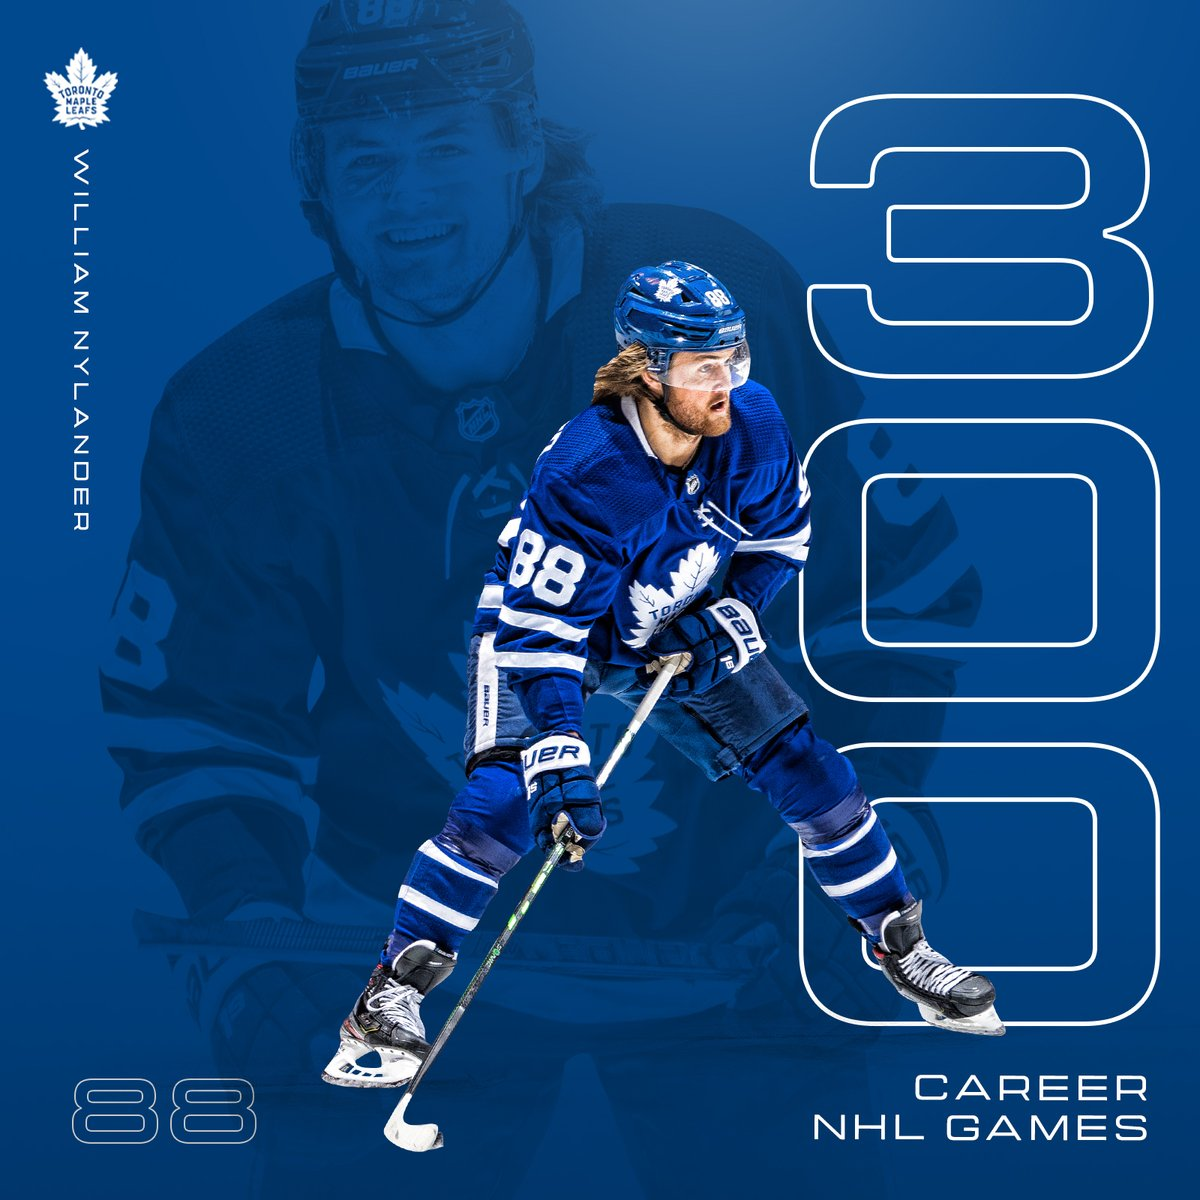 Congrats to @wmnylander on 300 career @NHL games 👏 #LeafsForever